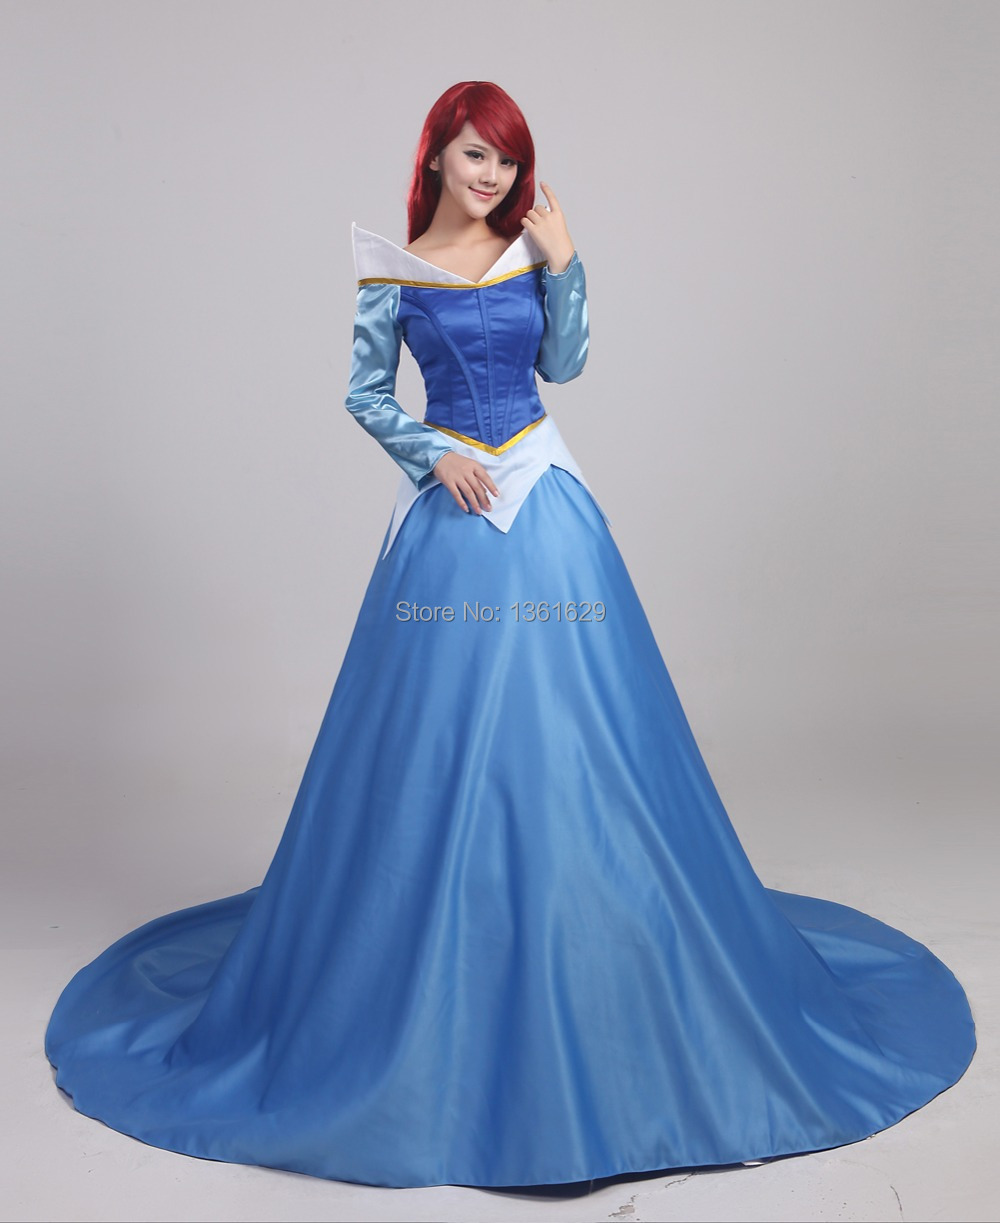 Pictures of princess dresses for adults